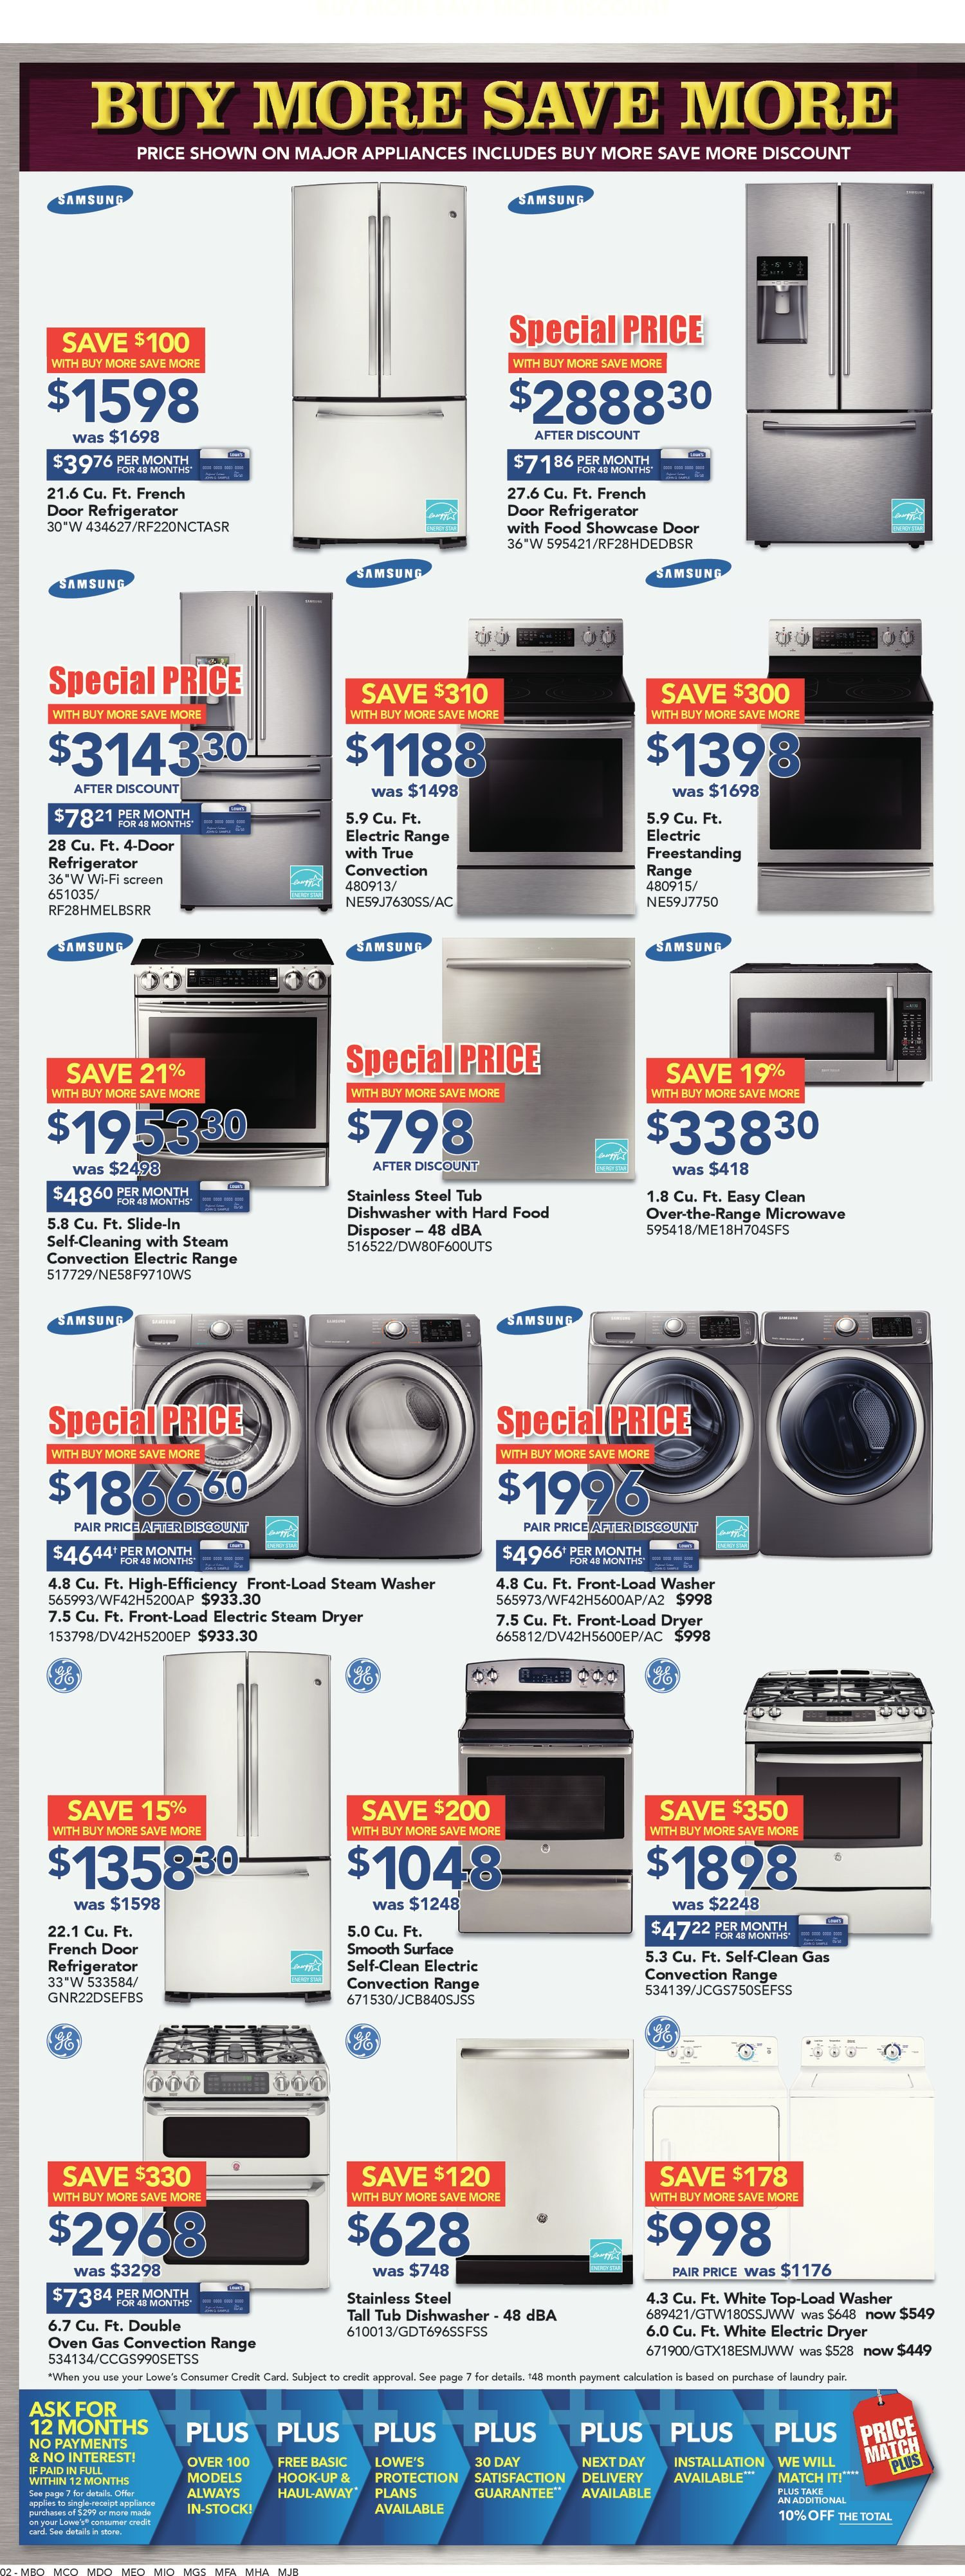 Lowes Weekly Flyer Buy More Save Oct 22 28 3976 Fuel Filter